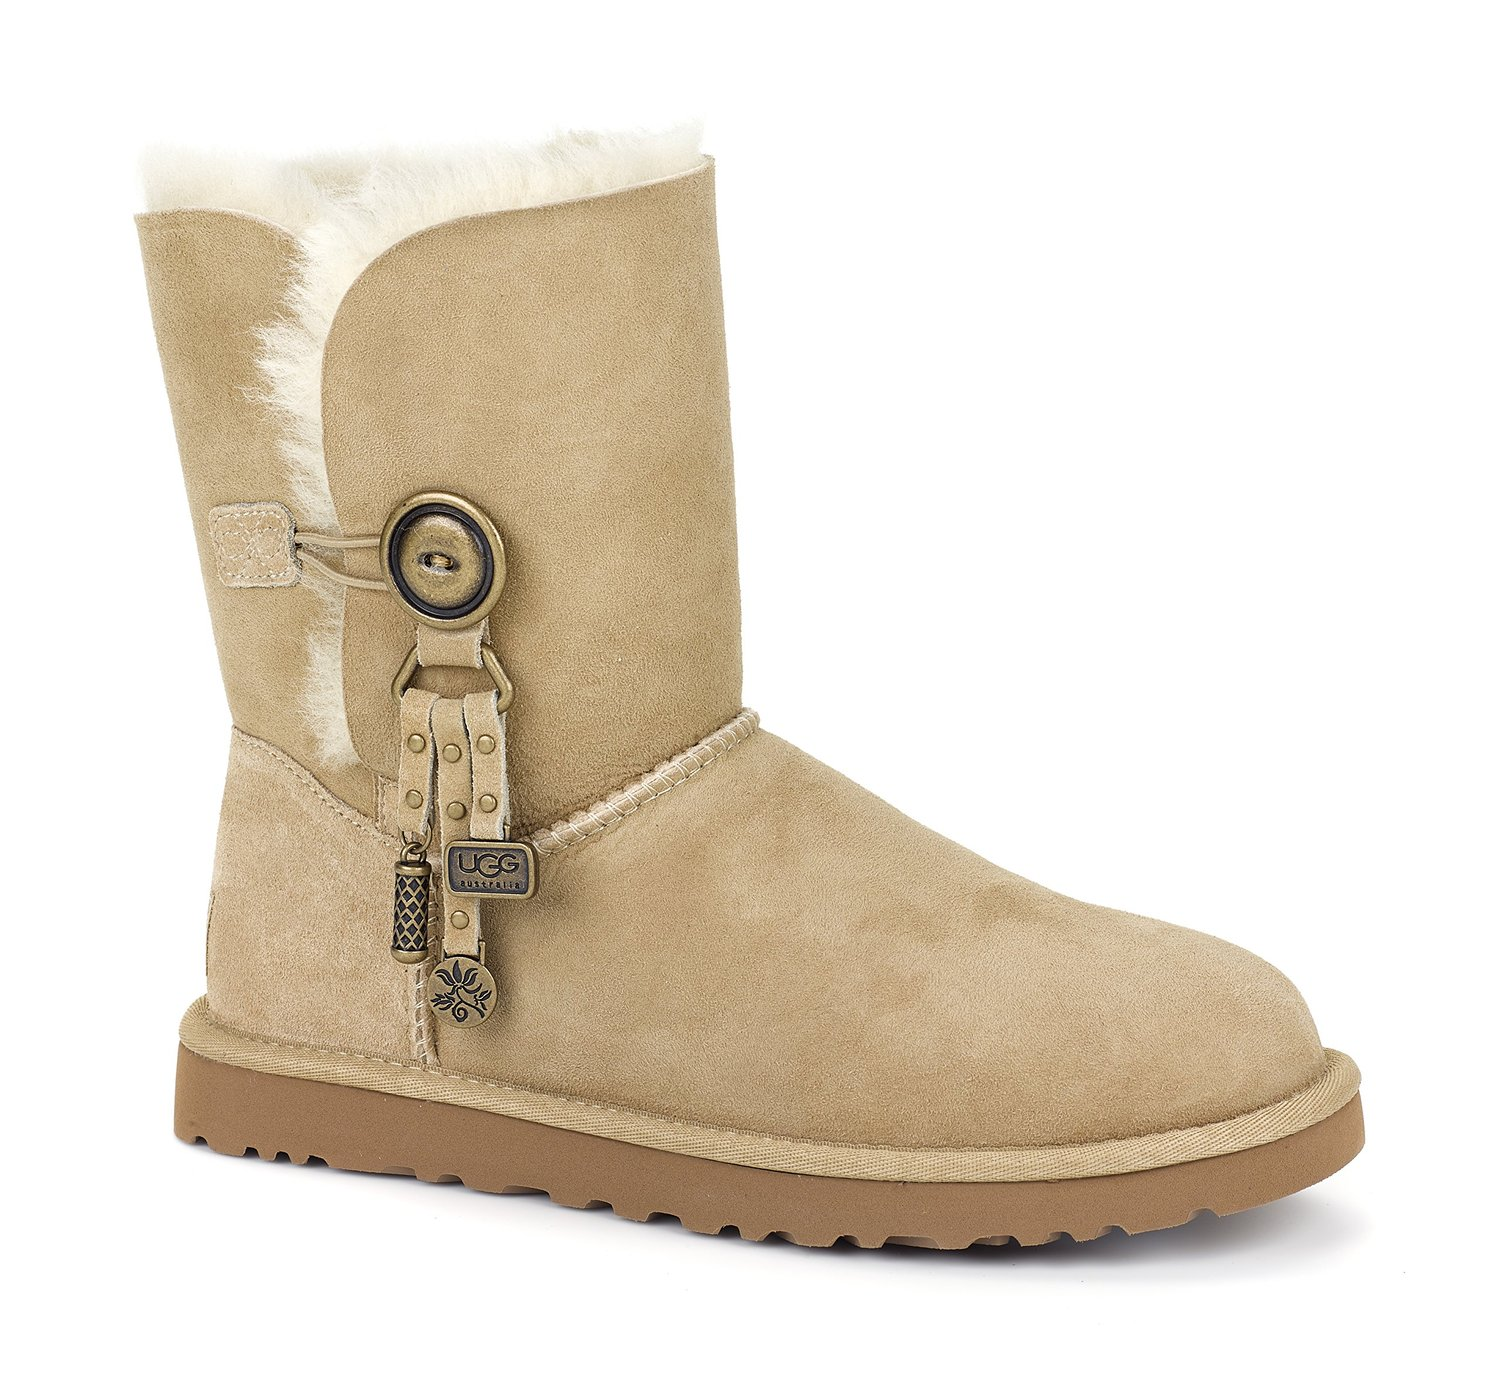 where can i buy uggs in nyc